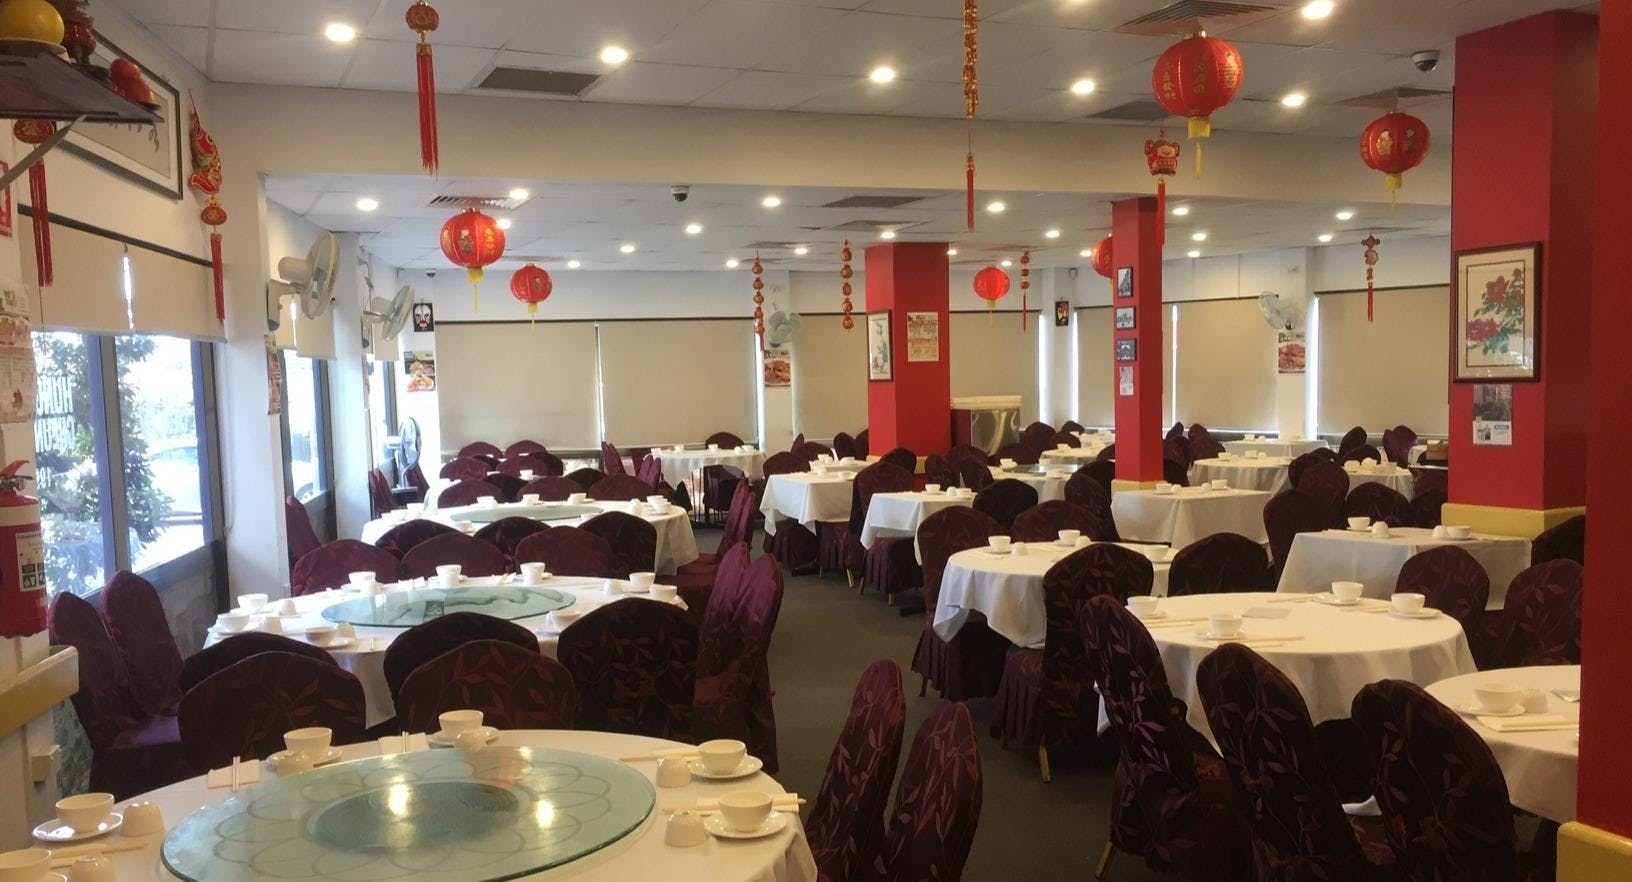 Hung Cheung Sydney image 1